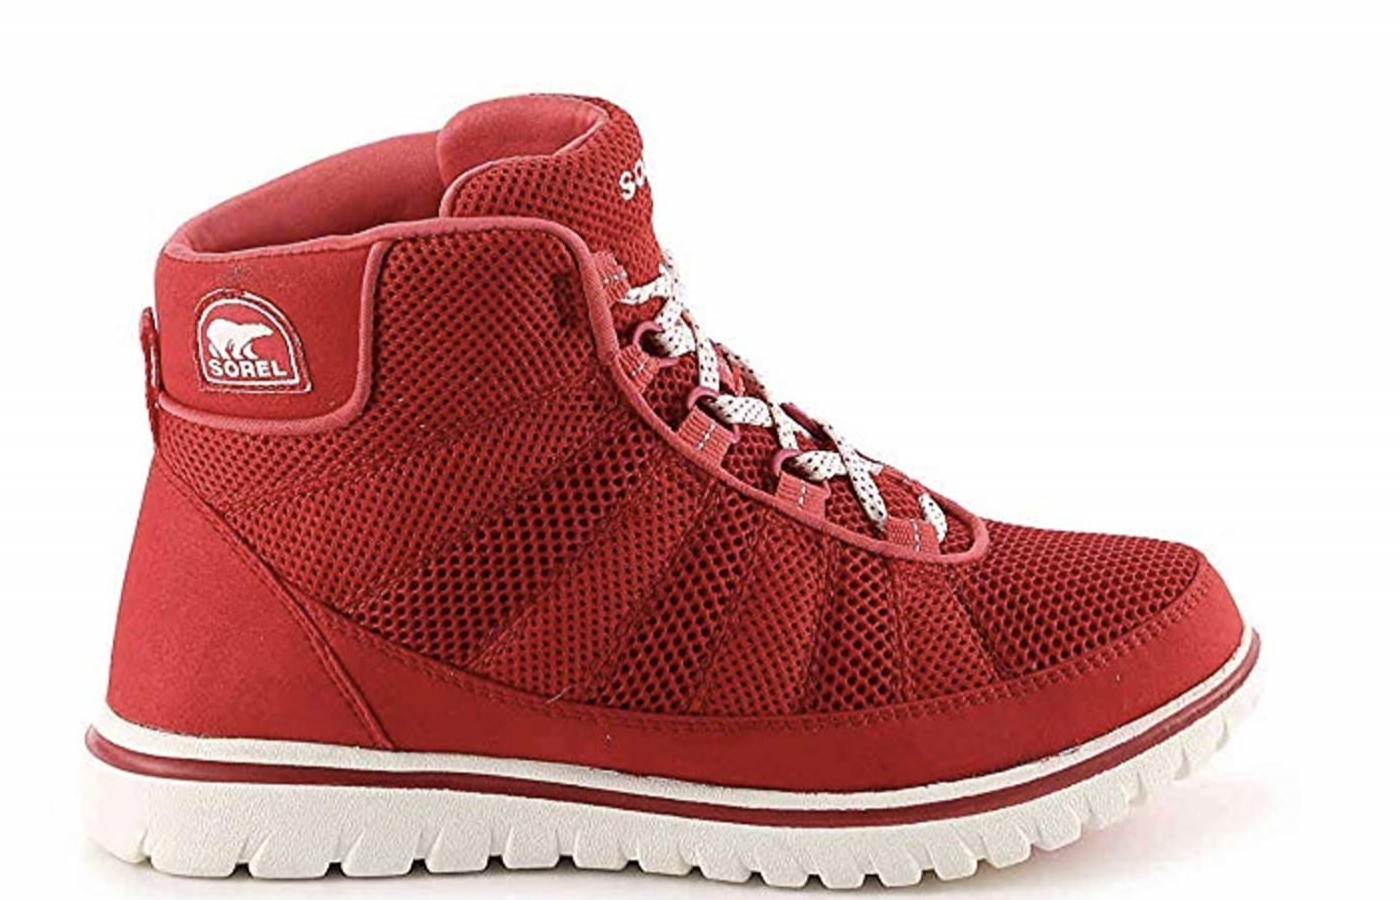 Sorel Tivoli Go High Top Right Angle